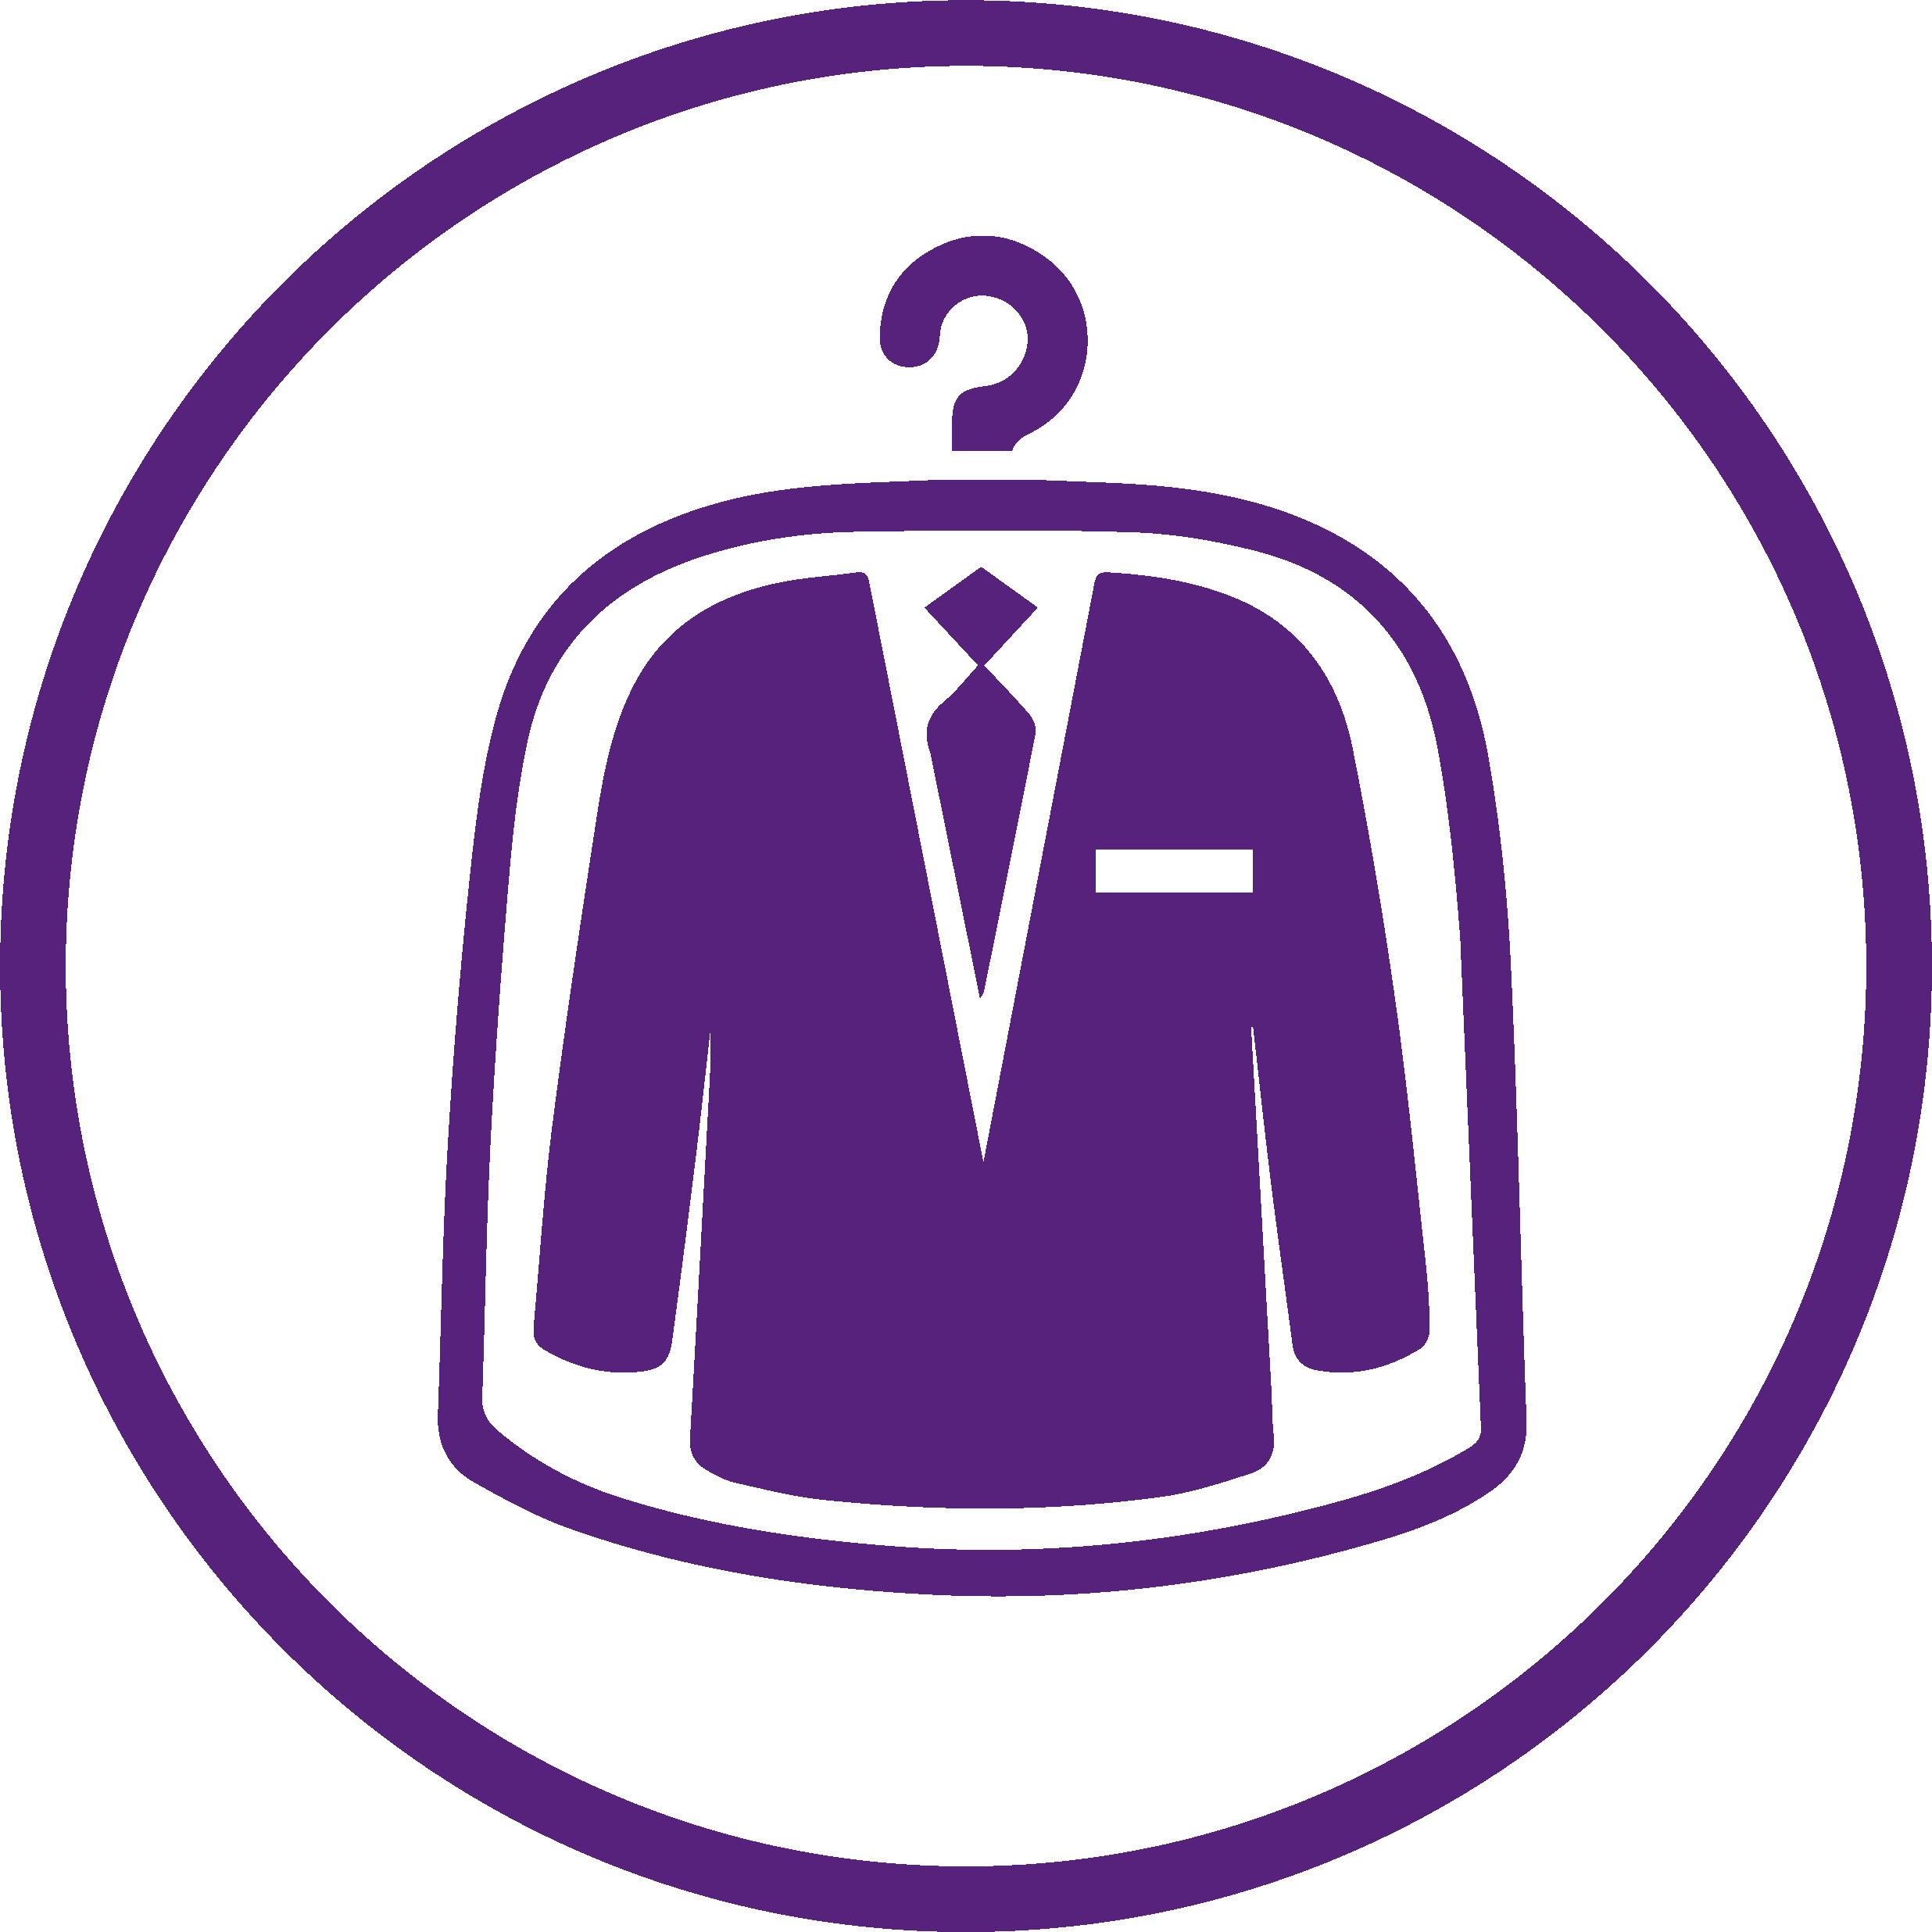 purple logo of dry cleaned clothes